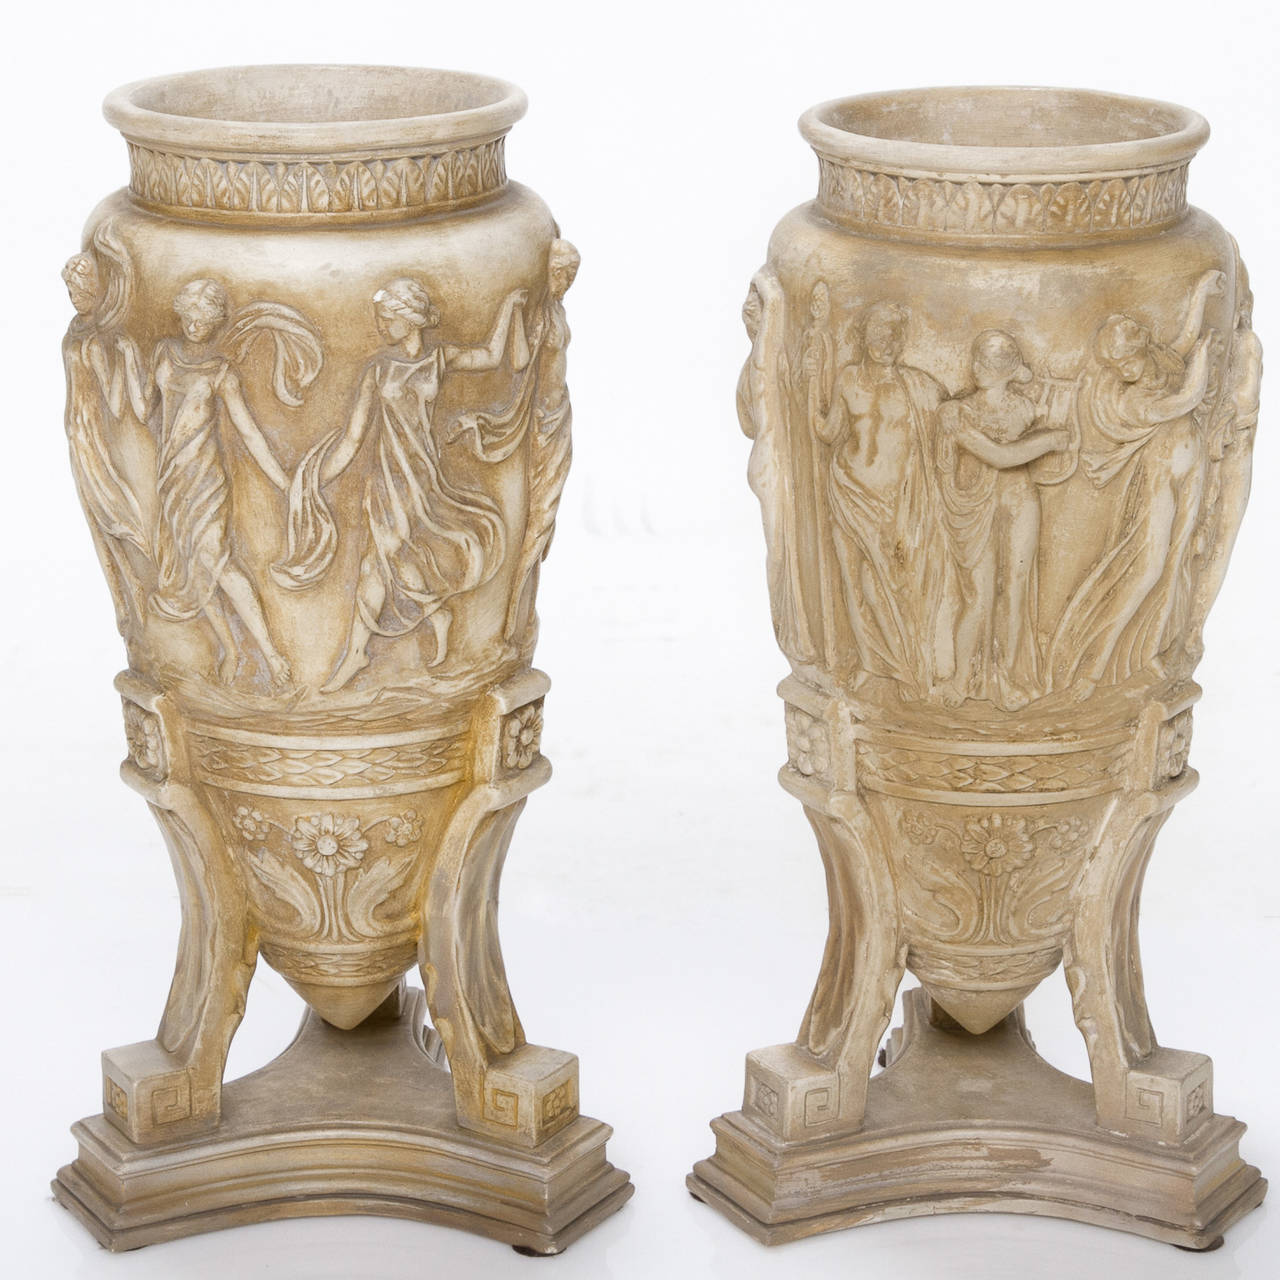 19th Century Pair of Italian Neoclassical Urns For Sale